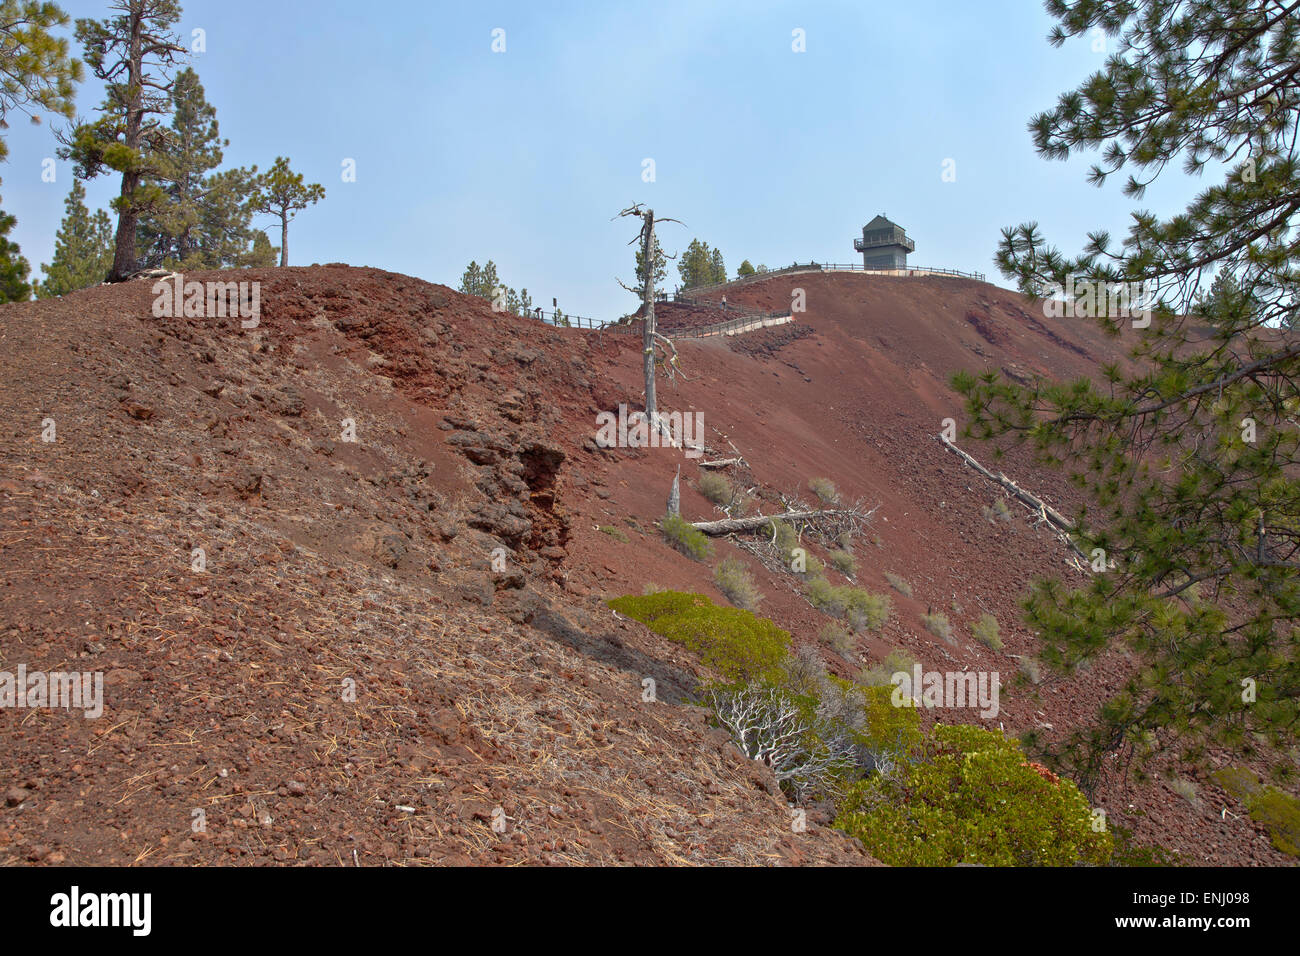 Lava Butte forest trees and crater near Bend Oregon. - Stock Image